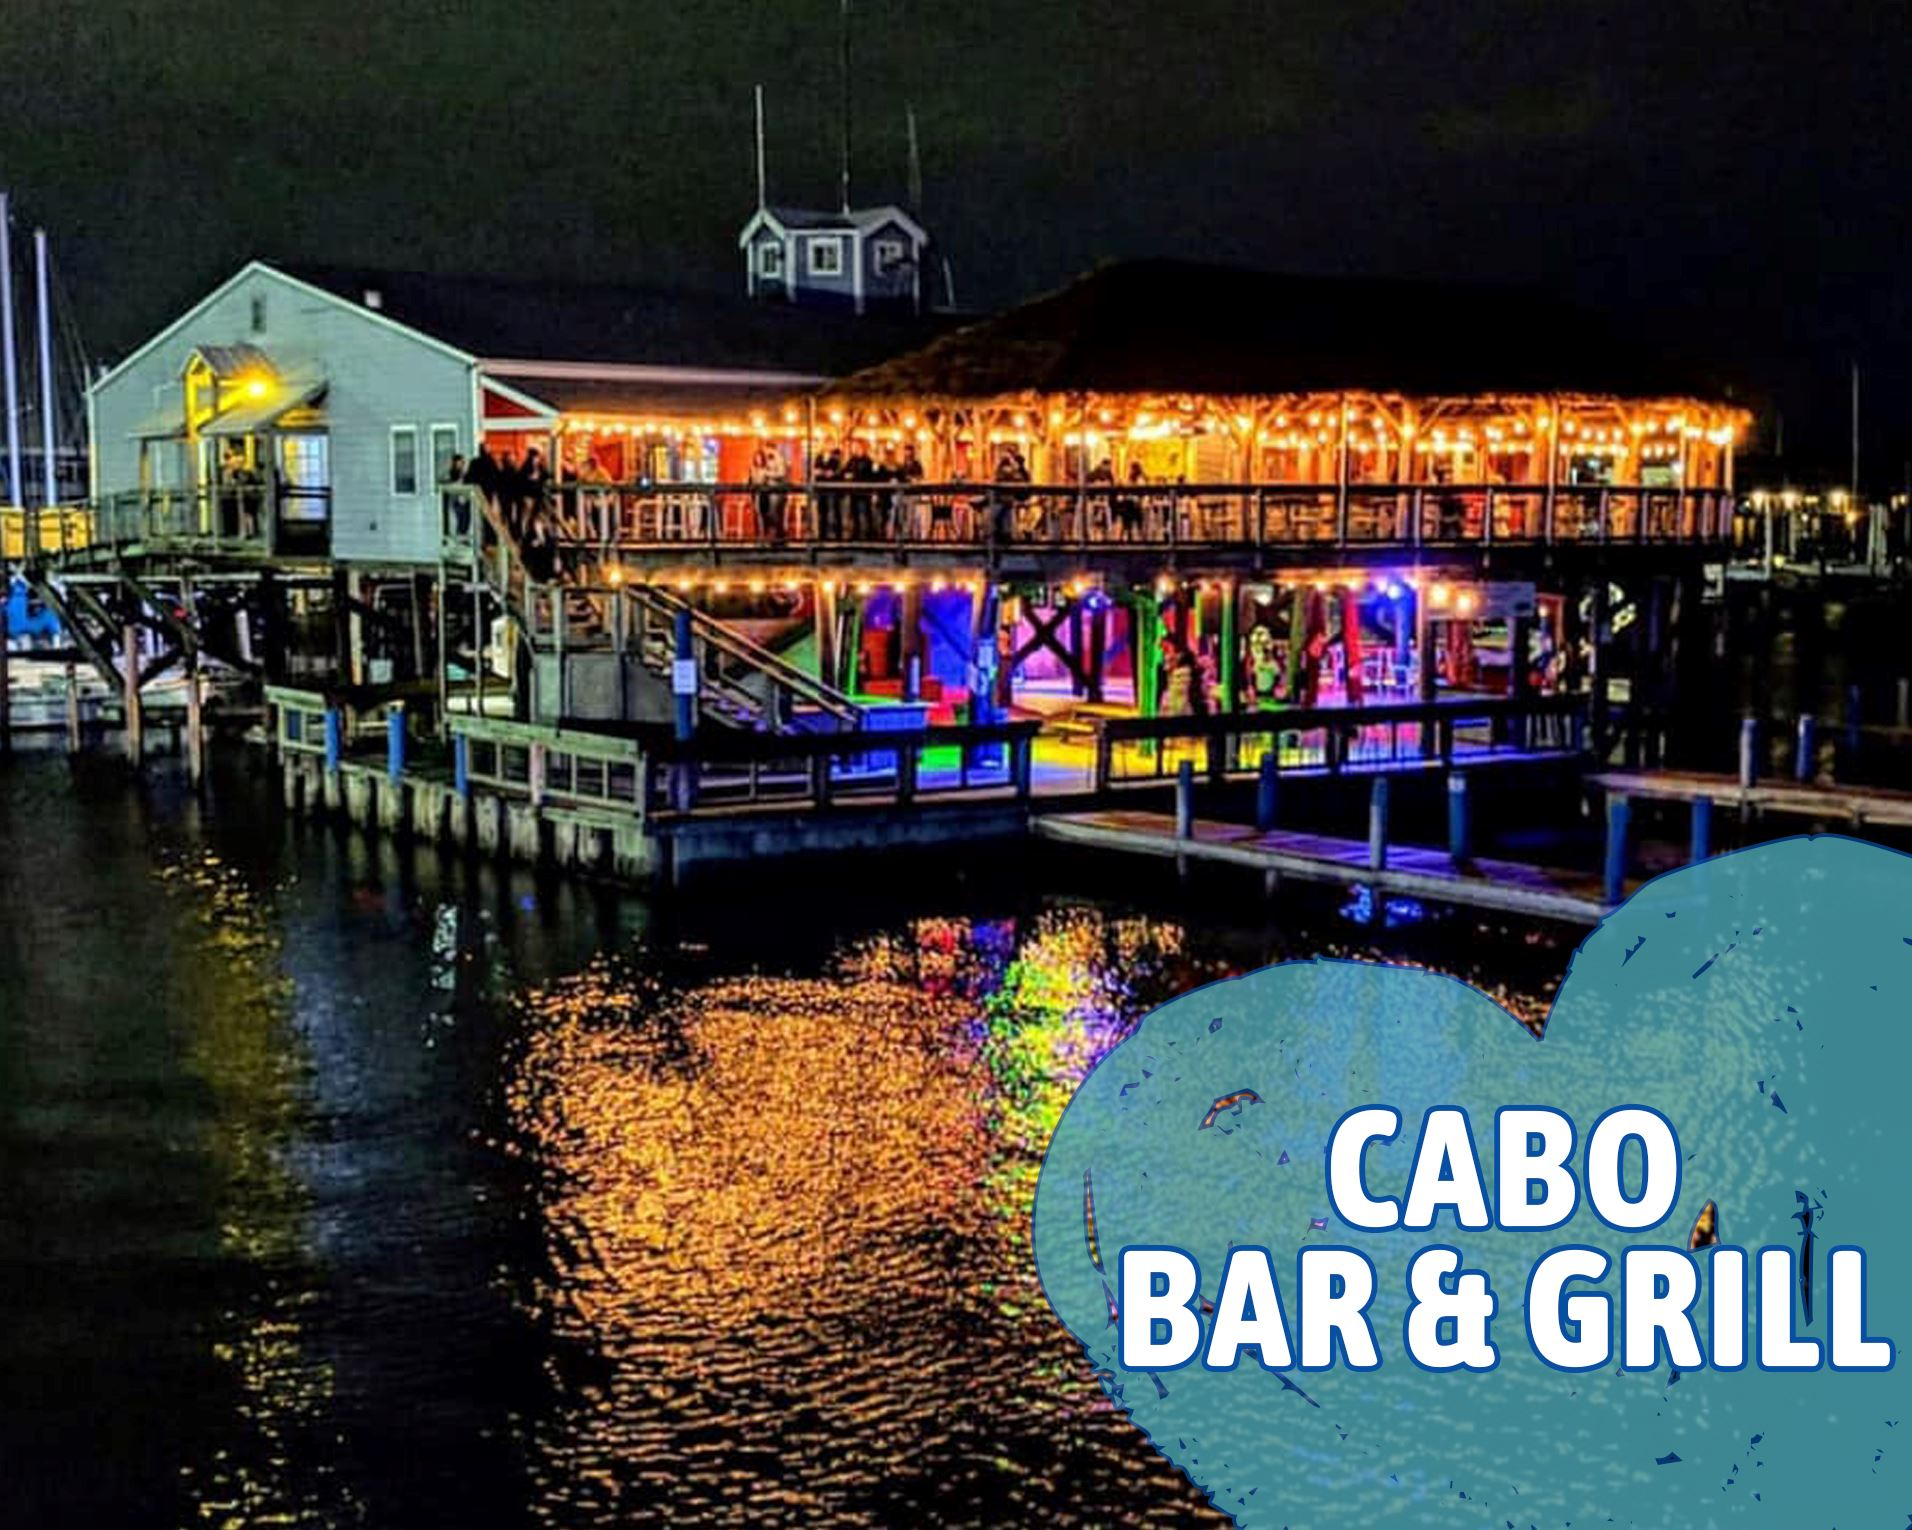 Cabo Bar and Grill2 Opens in new window